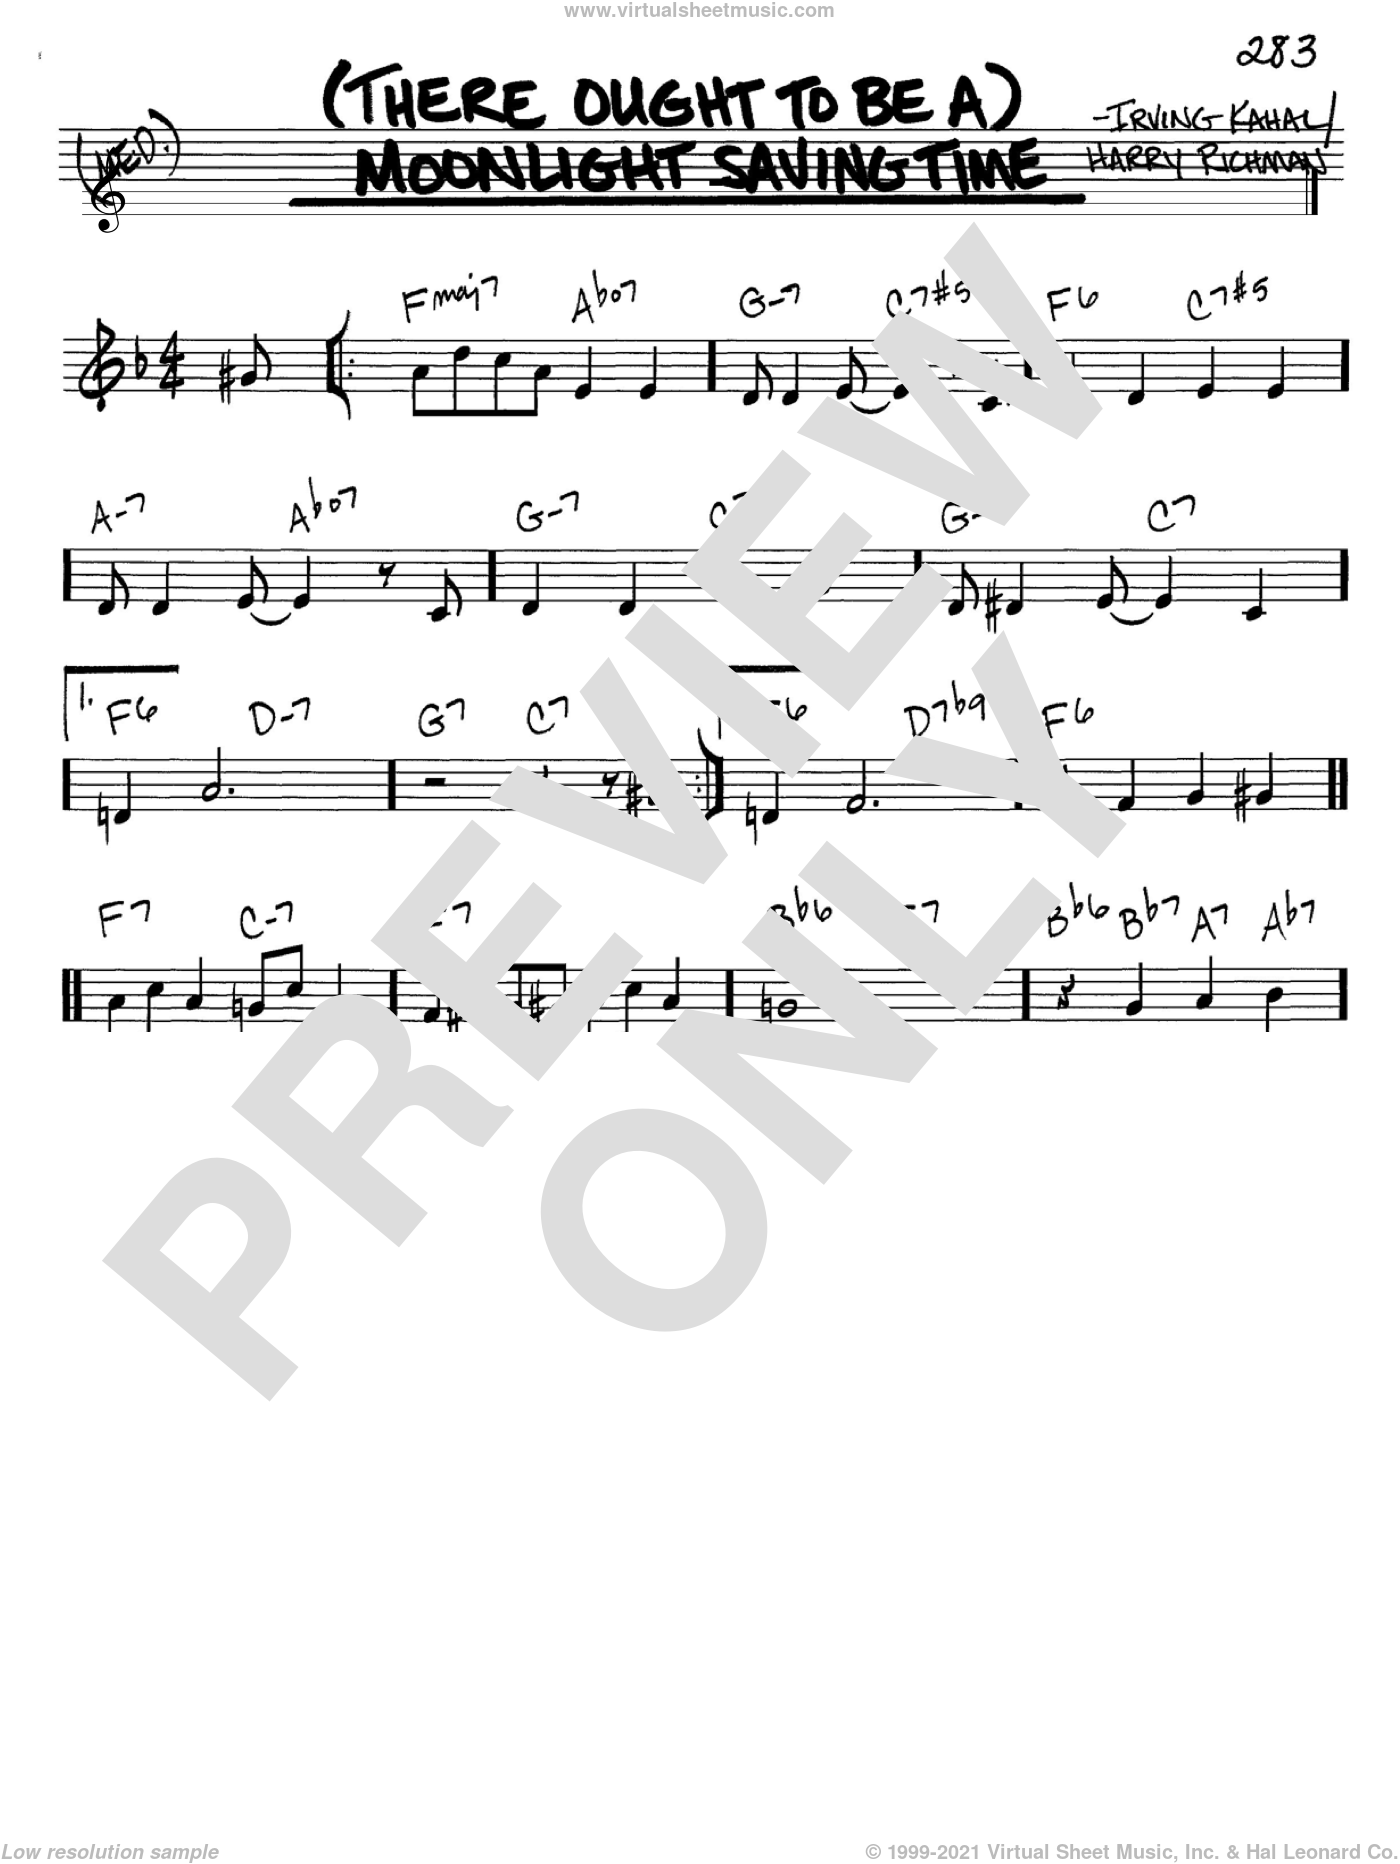 (There Ought To Be A) Moonlight Savings Time sheet music for voice and other instruments (in C) by Irving Kahal and Harry Richman, intermediate skill level